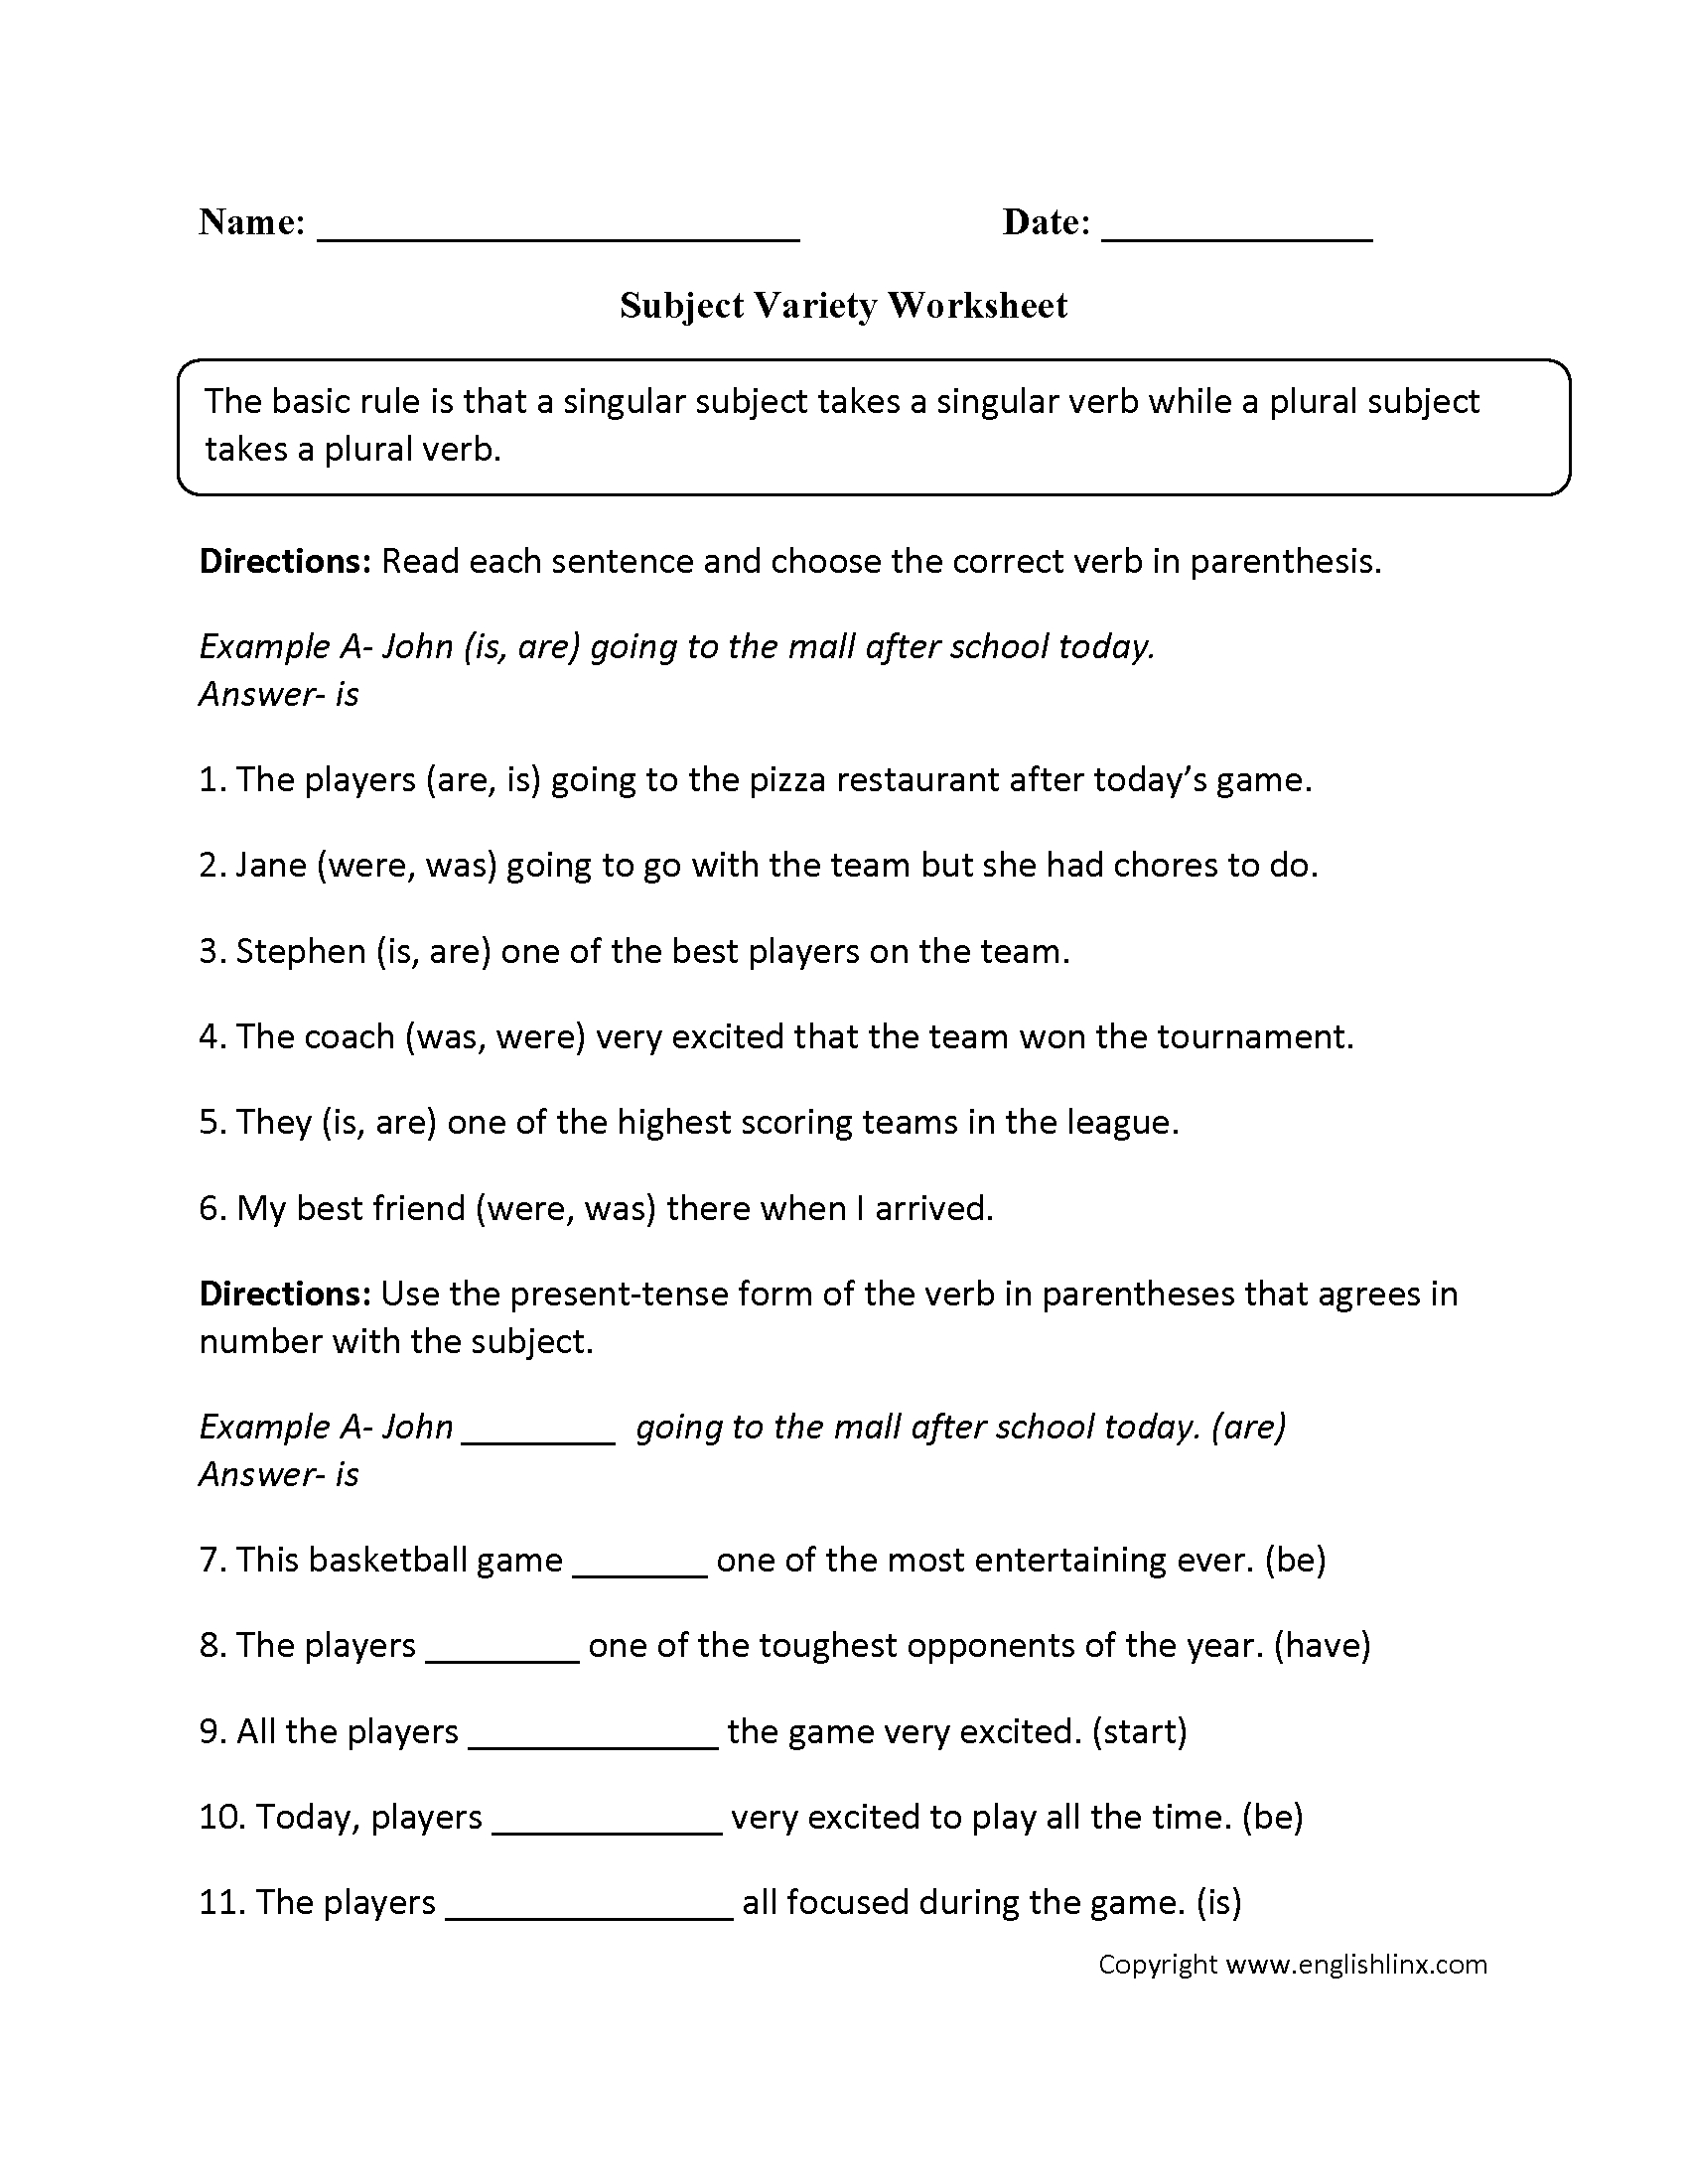 Word Usage Worksheets | Subject Verb Agreement Worksheets | Free Printable Subject Verb Agreement Worksheets